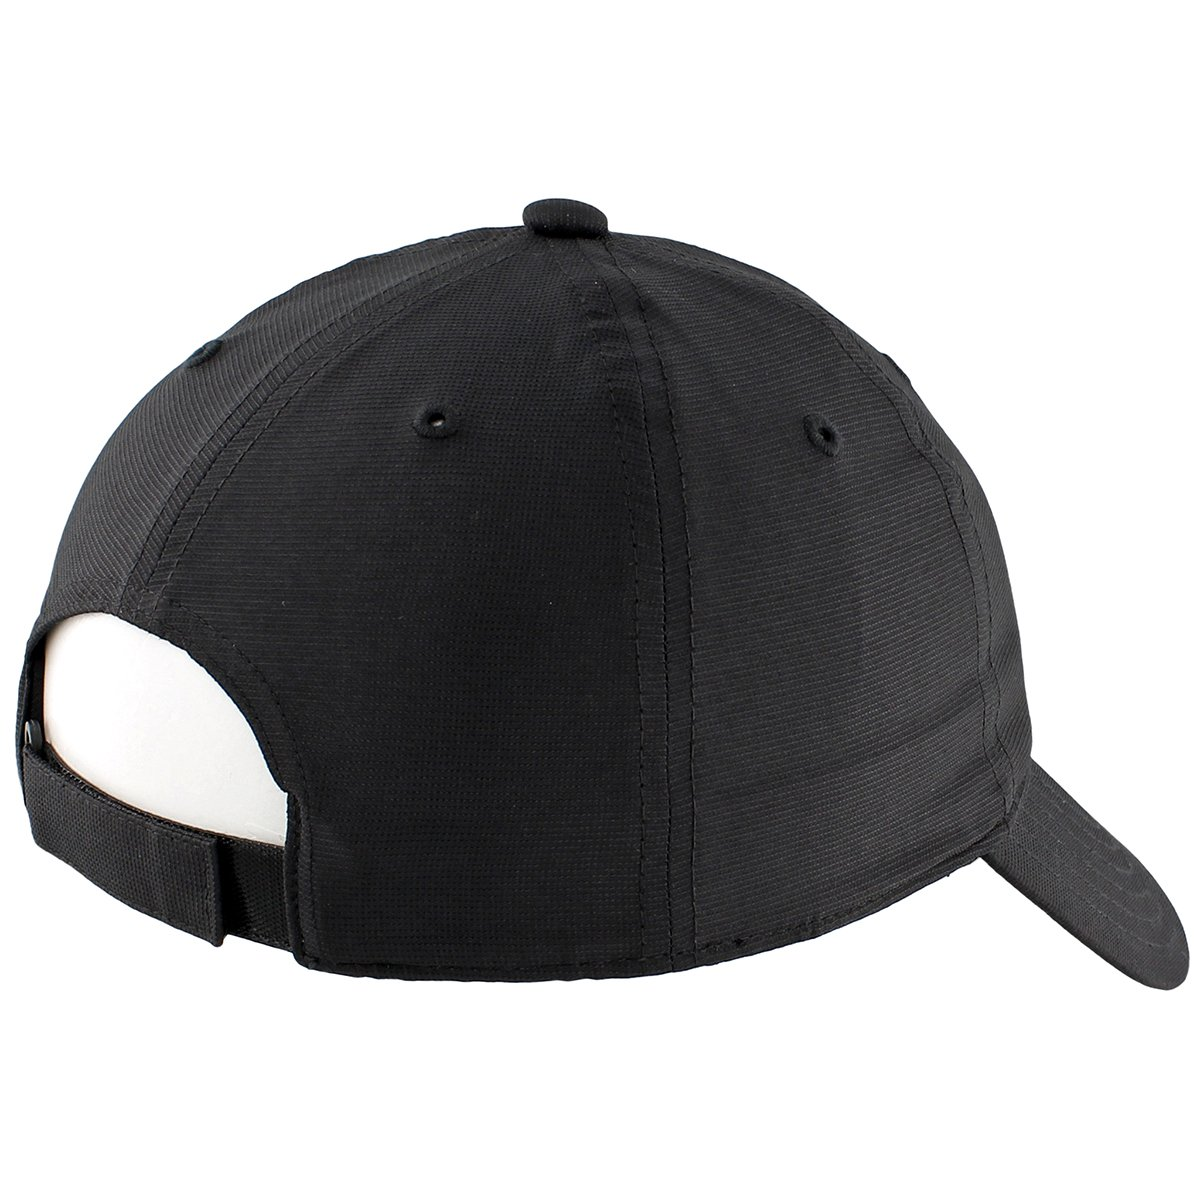 65cab52b227 Buy adidas Men s Relaxed Strap Back Cap